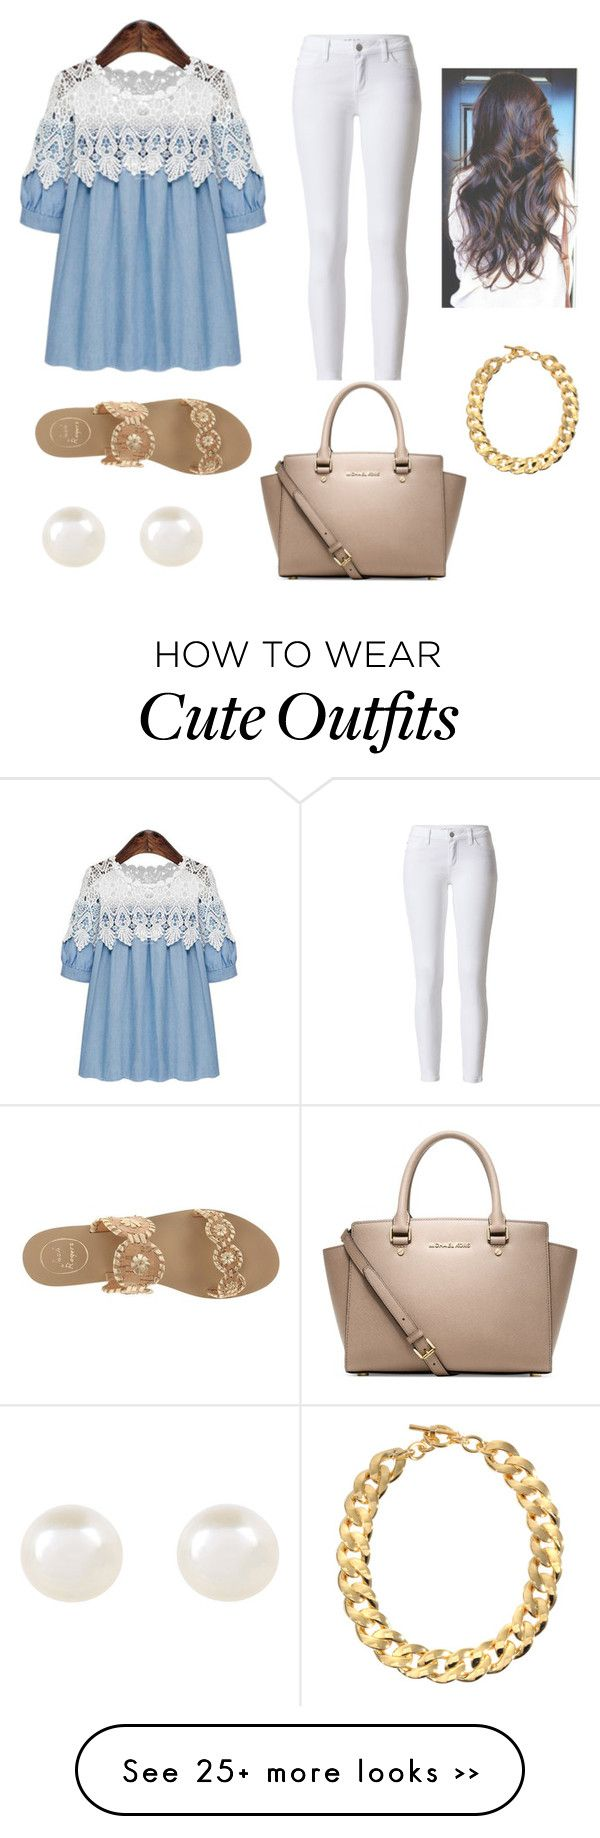 """My style of a cute school outfit"" by mgbroadwater on Polyvore"